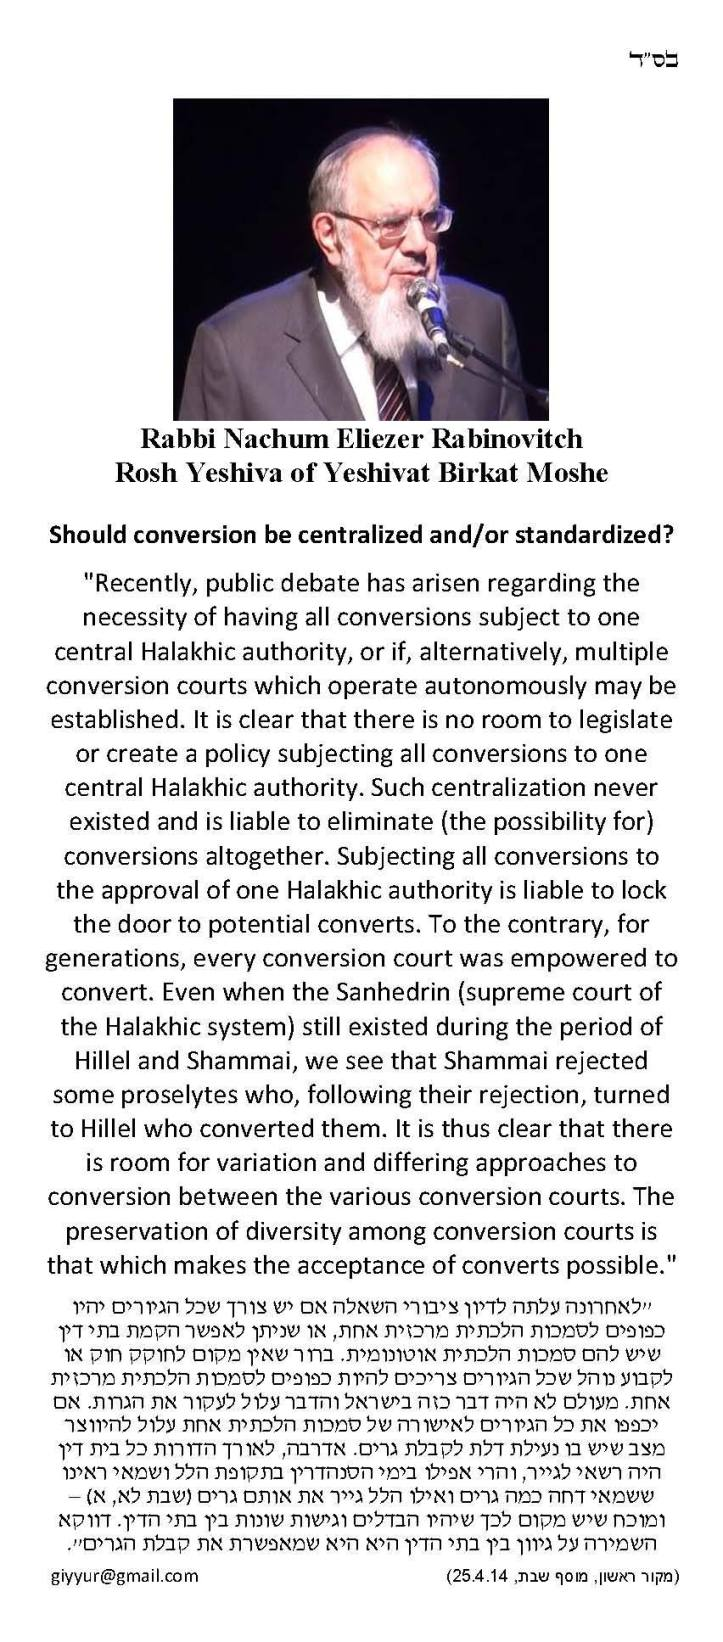 Conversions to Judaism not centralized